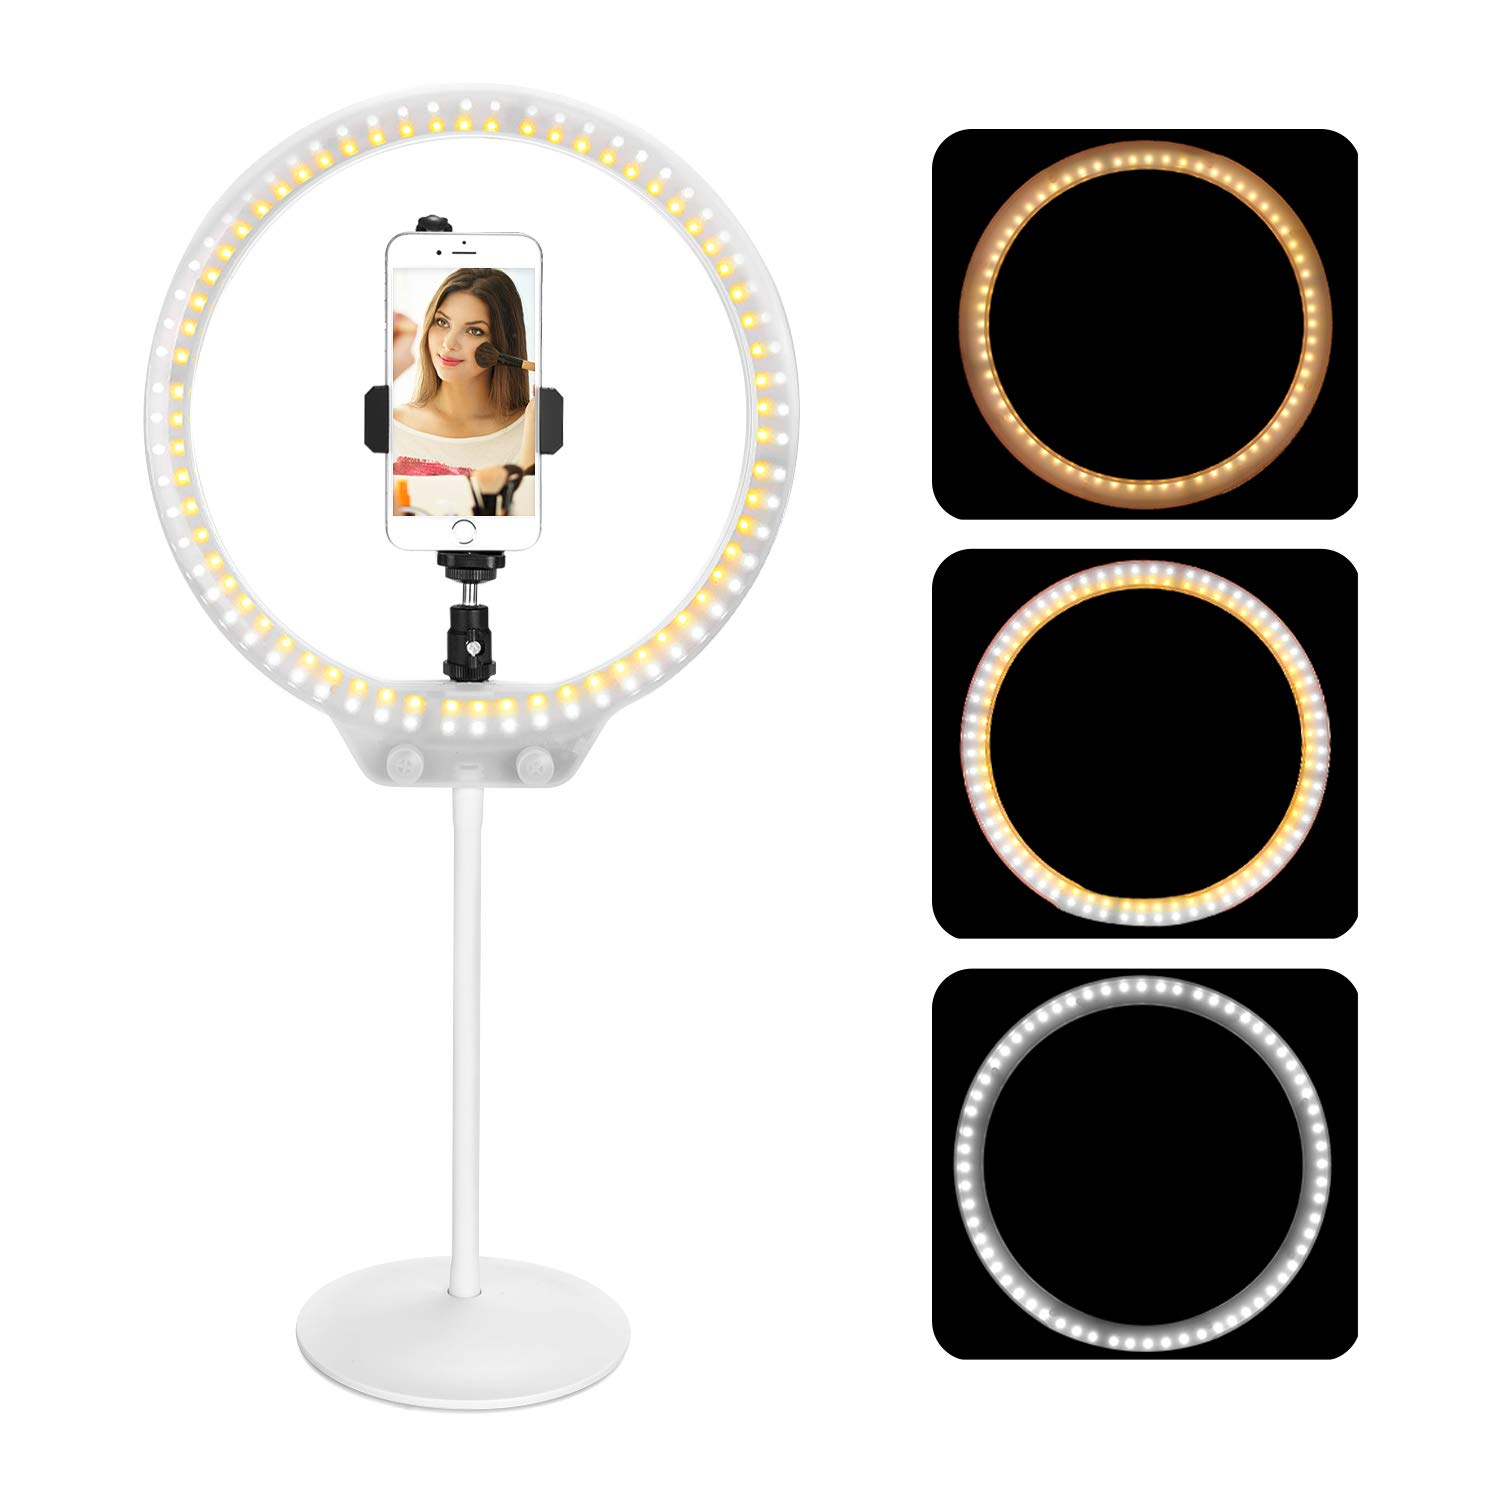 Sefile Ring Light, Zomei 10 Inches Dimmable LED Ring Light with Hose Support Desktop Stand, Table Top LED Selfie Ring Light with Phone Holder for Makeup and Self-Portrait Video Photography by Fencos